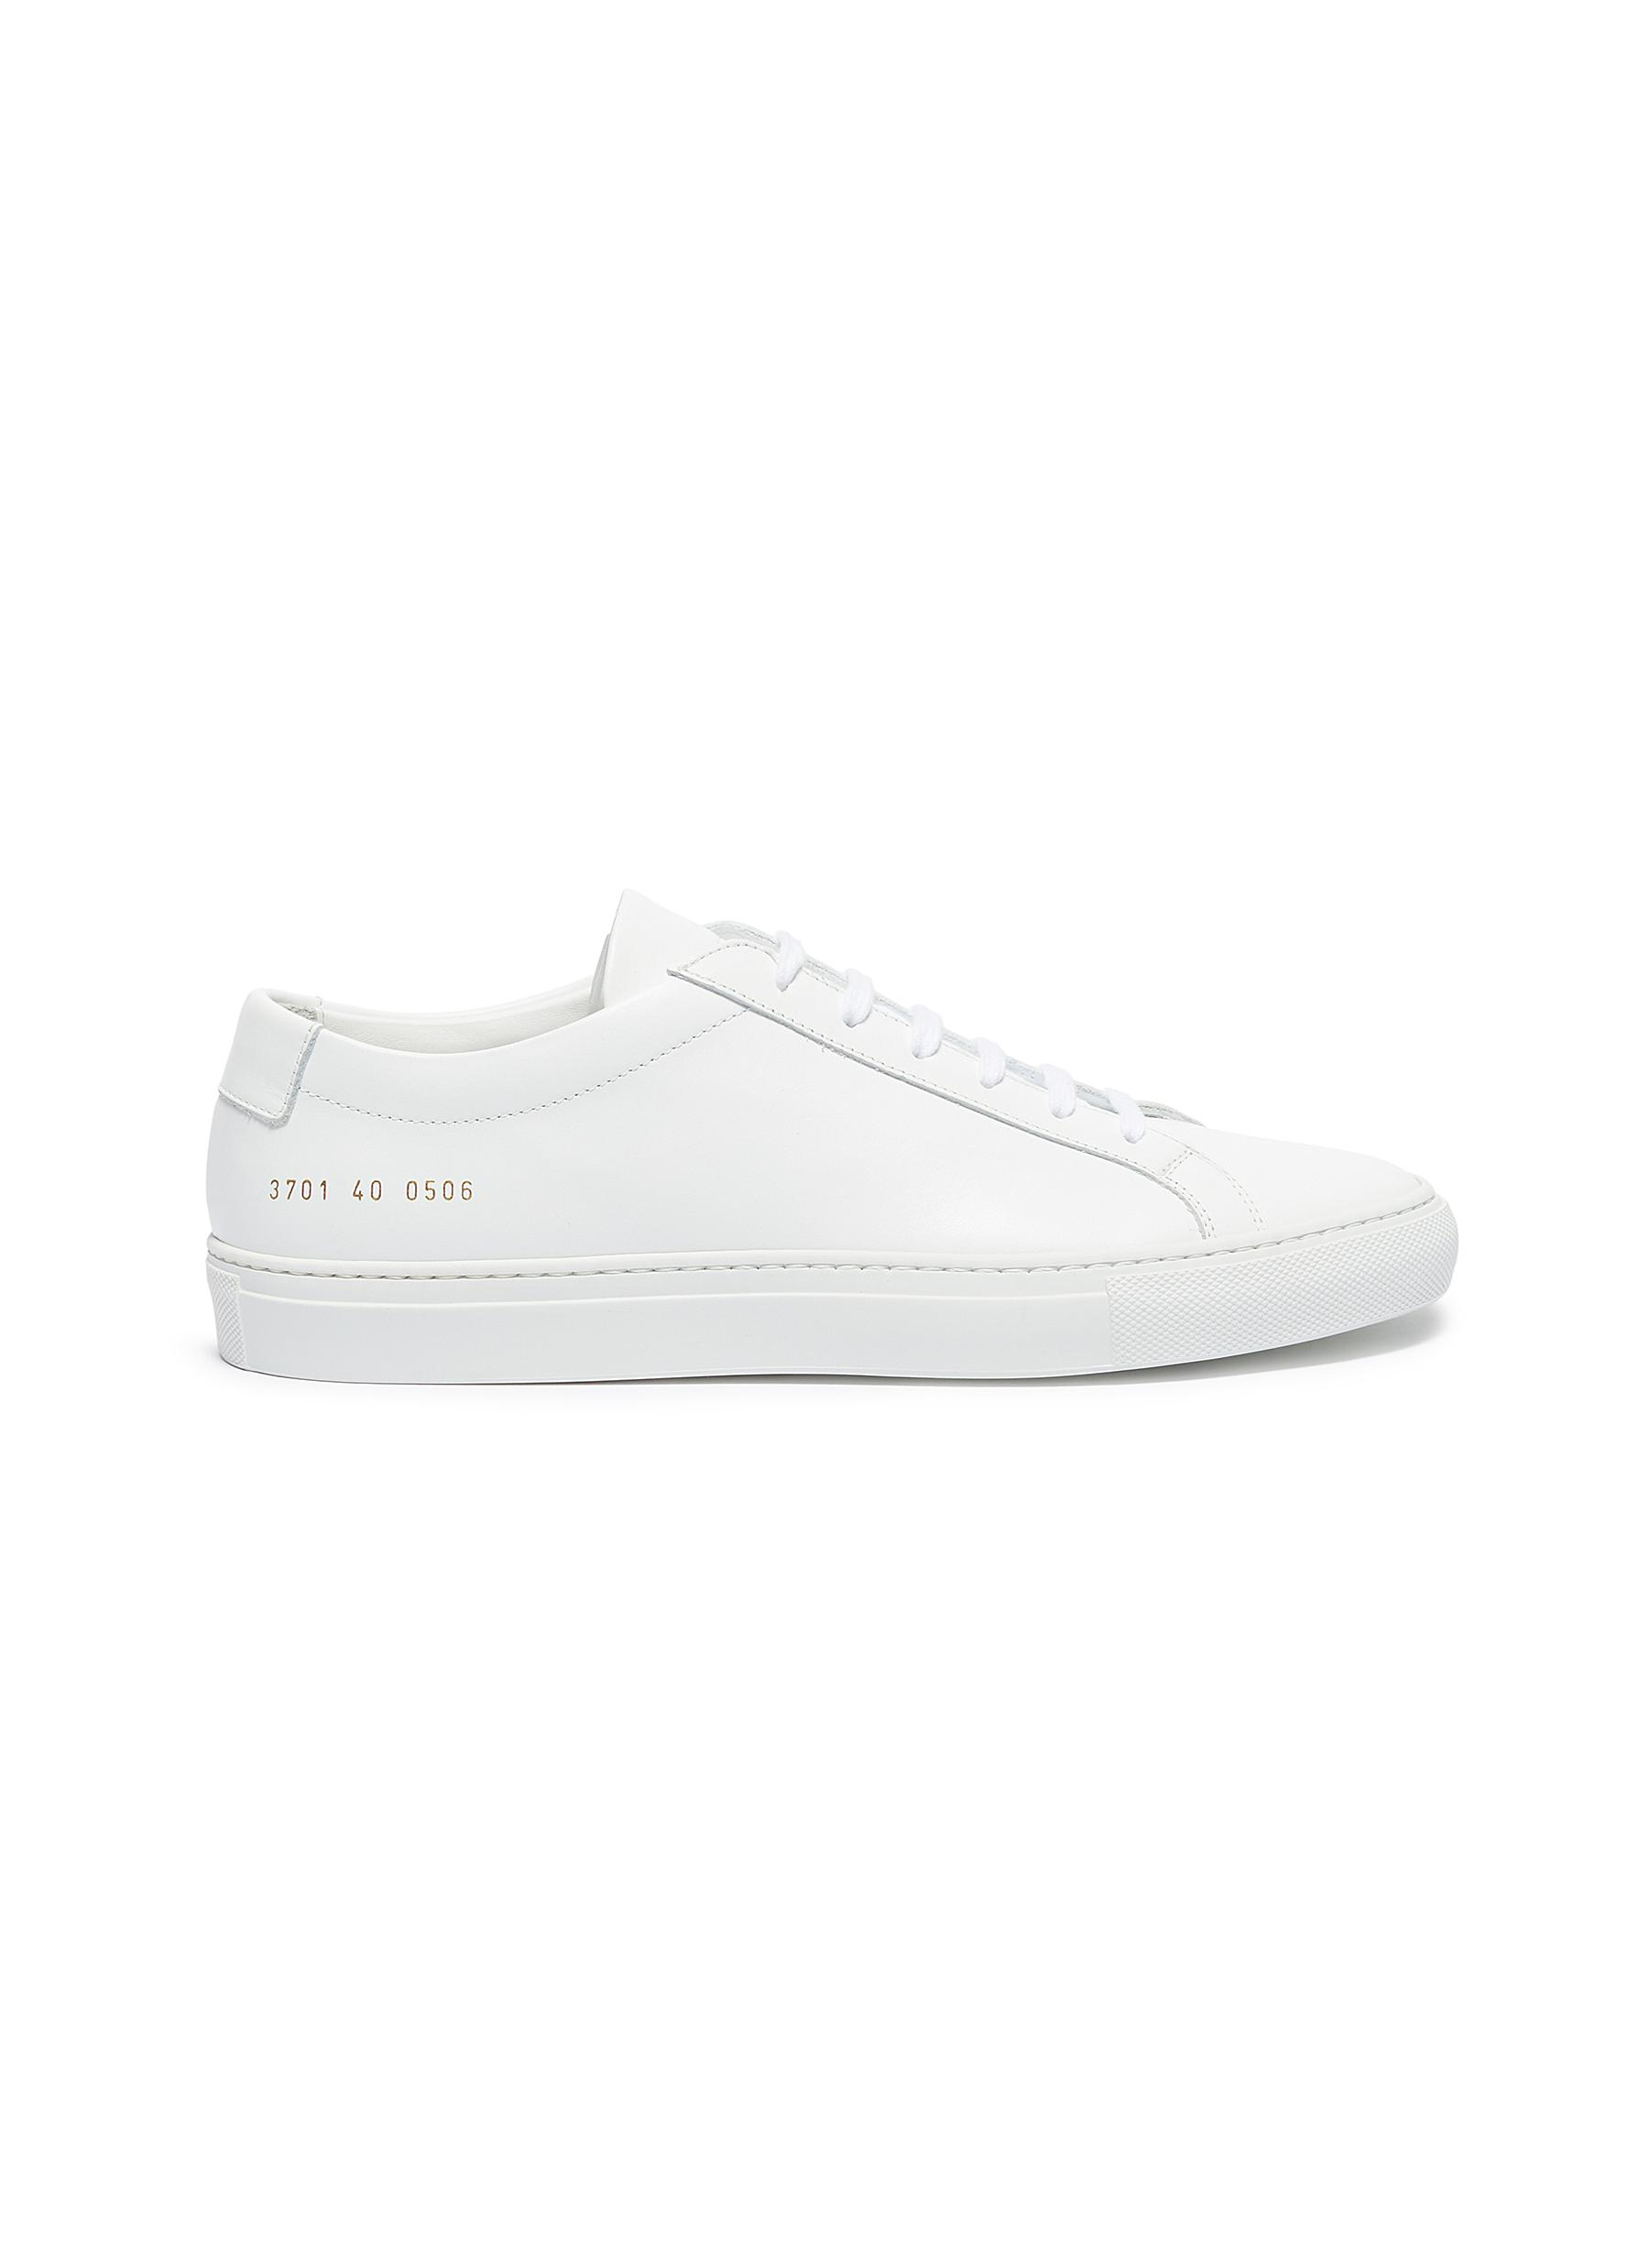 Common Projects Sneakers Original Achilles leather sneakers